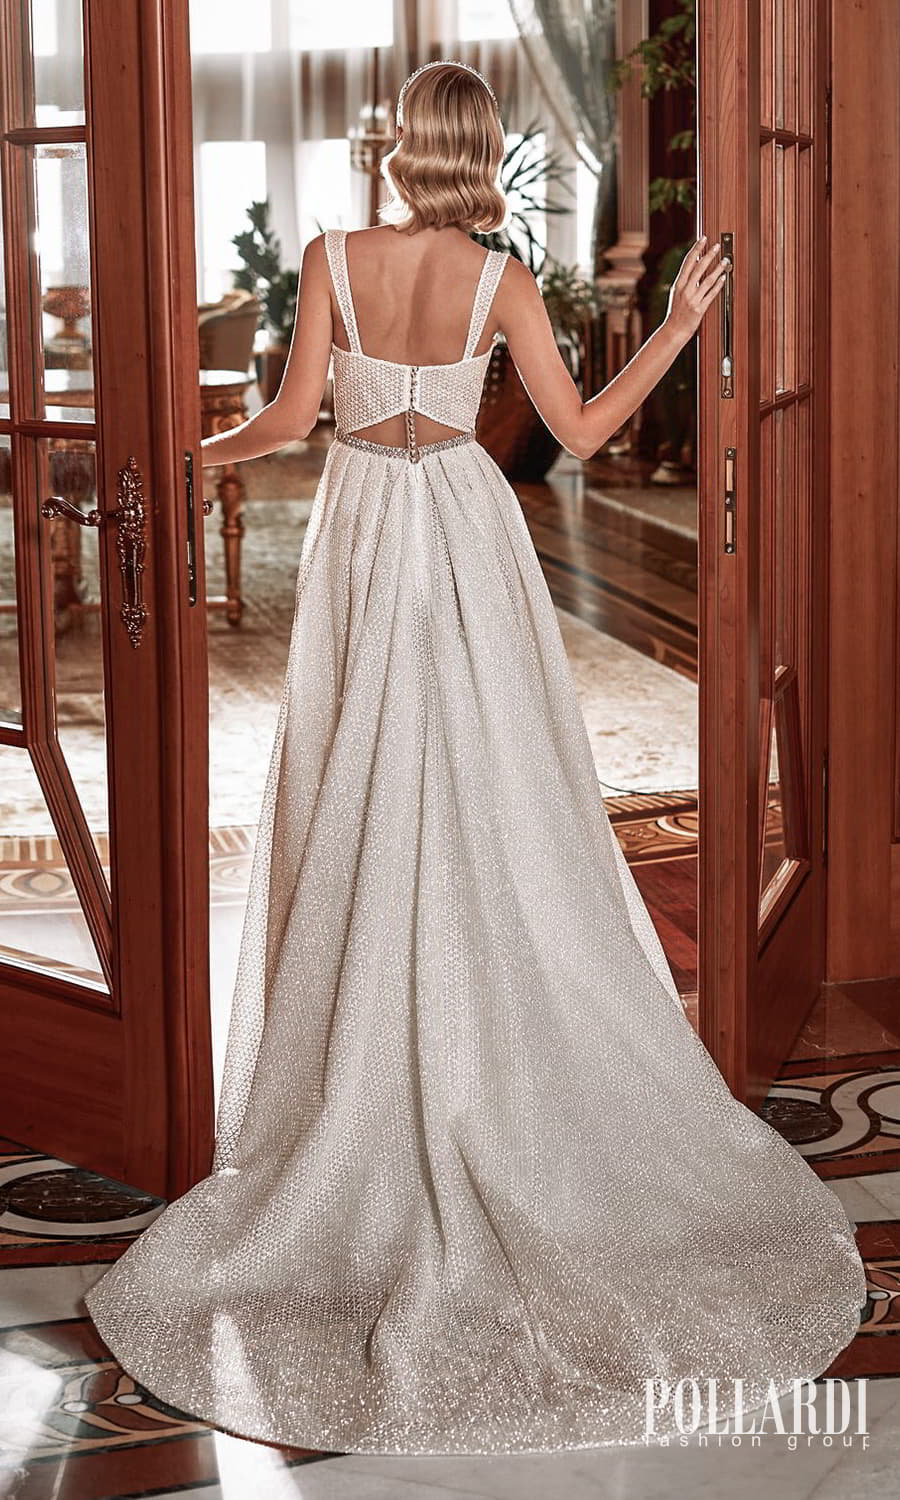 pollardi 2022 your triumph bridal sleeveless straps sweetheart neckline fully embellished a line ball gown wedding dress chapel train (perfection) bv